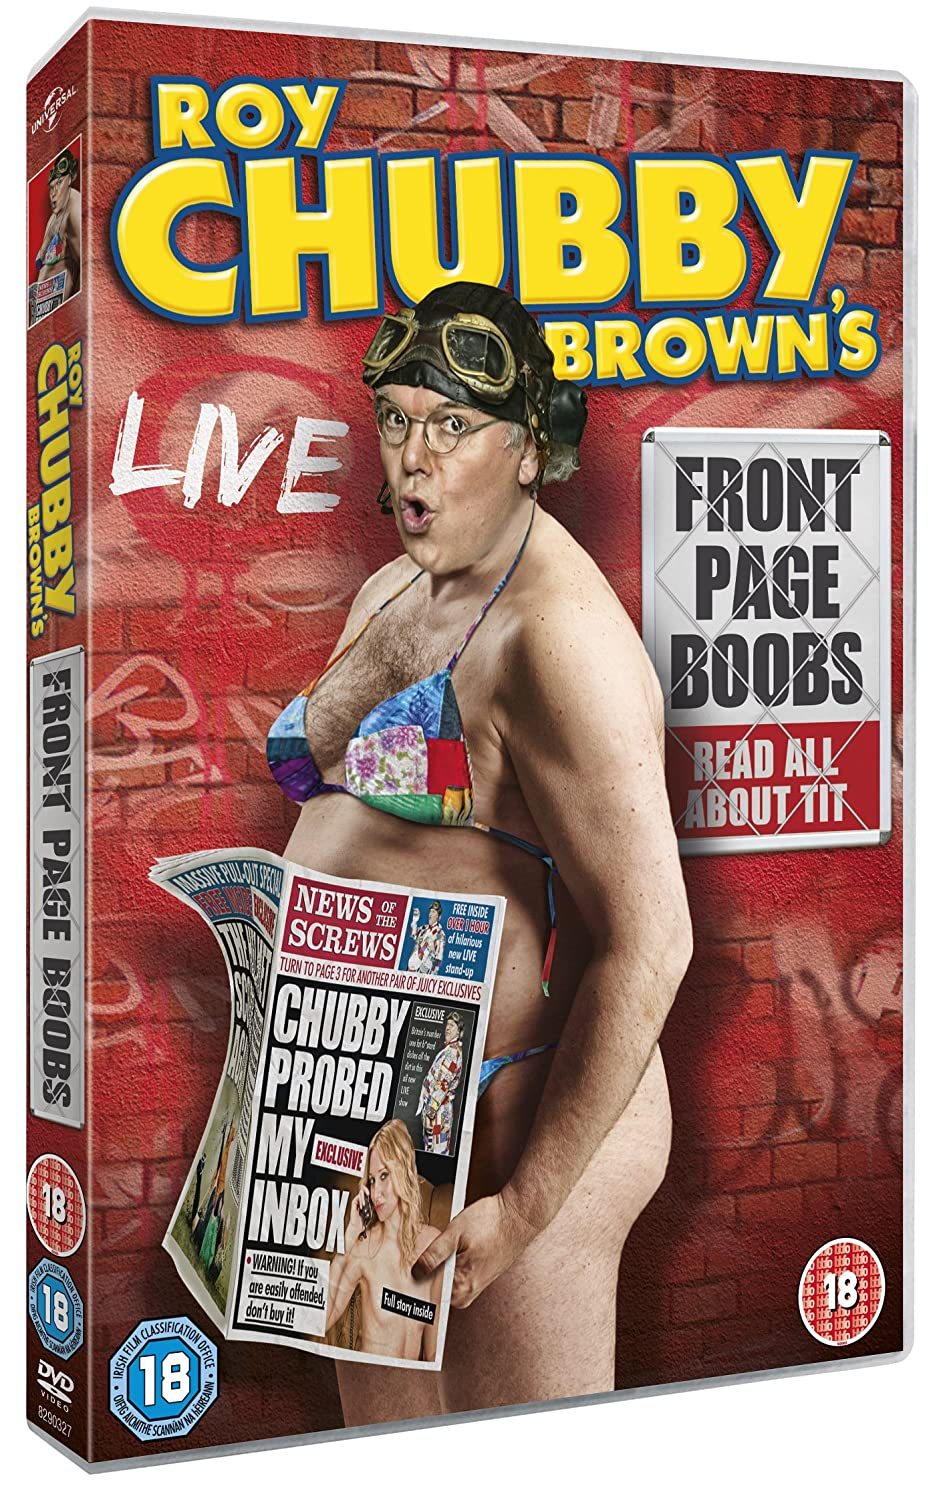 Roy Chubby Brown's Front Page Boobs [DVD]: Amazon.co.uk: Roy 'Chubby ...